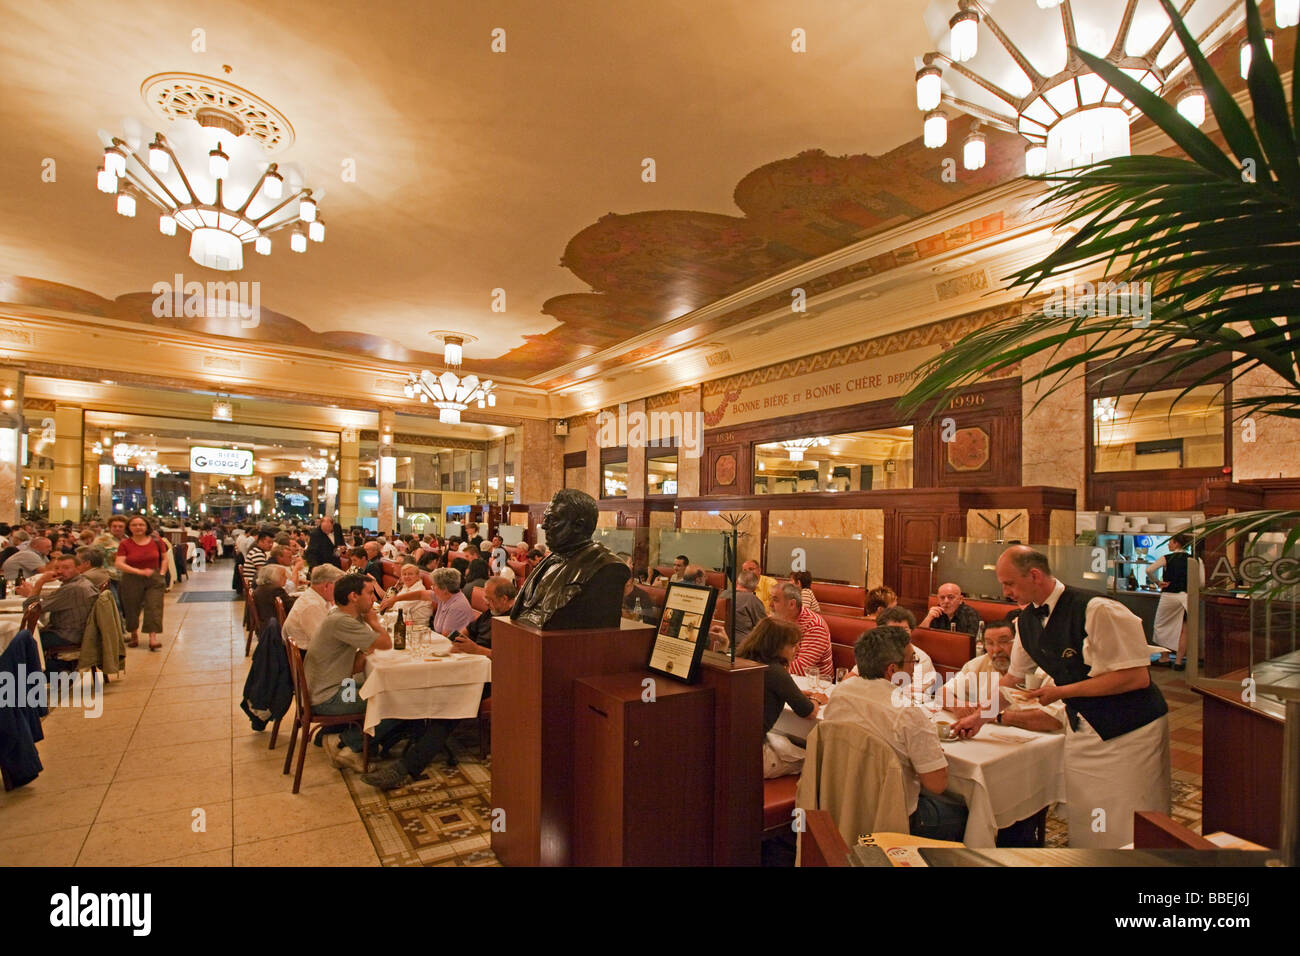 Brasserie Georges indoor people Lyon Rhone Alps France - Stock Image